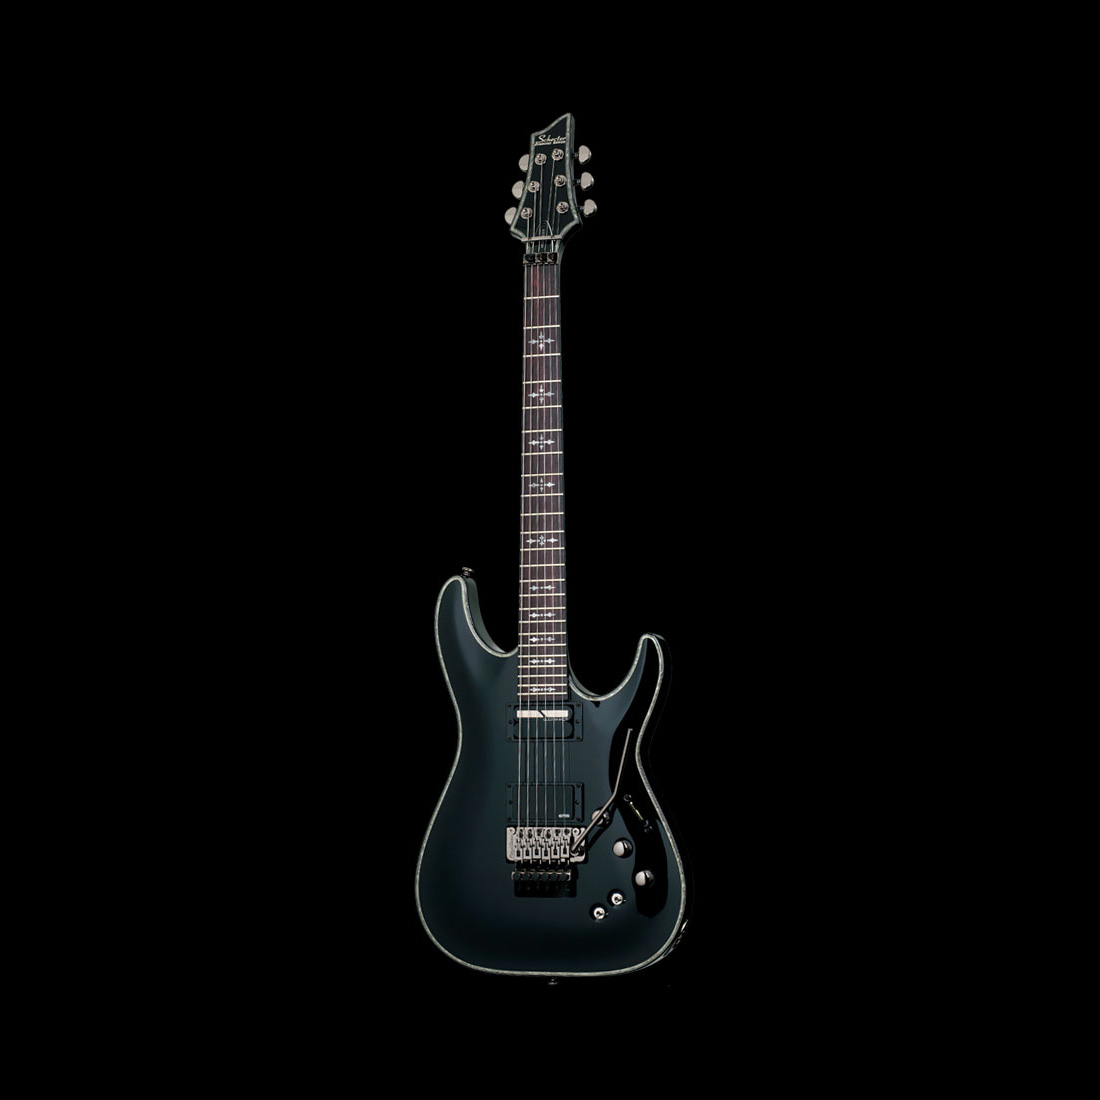 Schecter / HELLRAISER SUSTAINIAC C-1FR Gross Black シェクター エレキギター 【お取り寄せ商品】